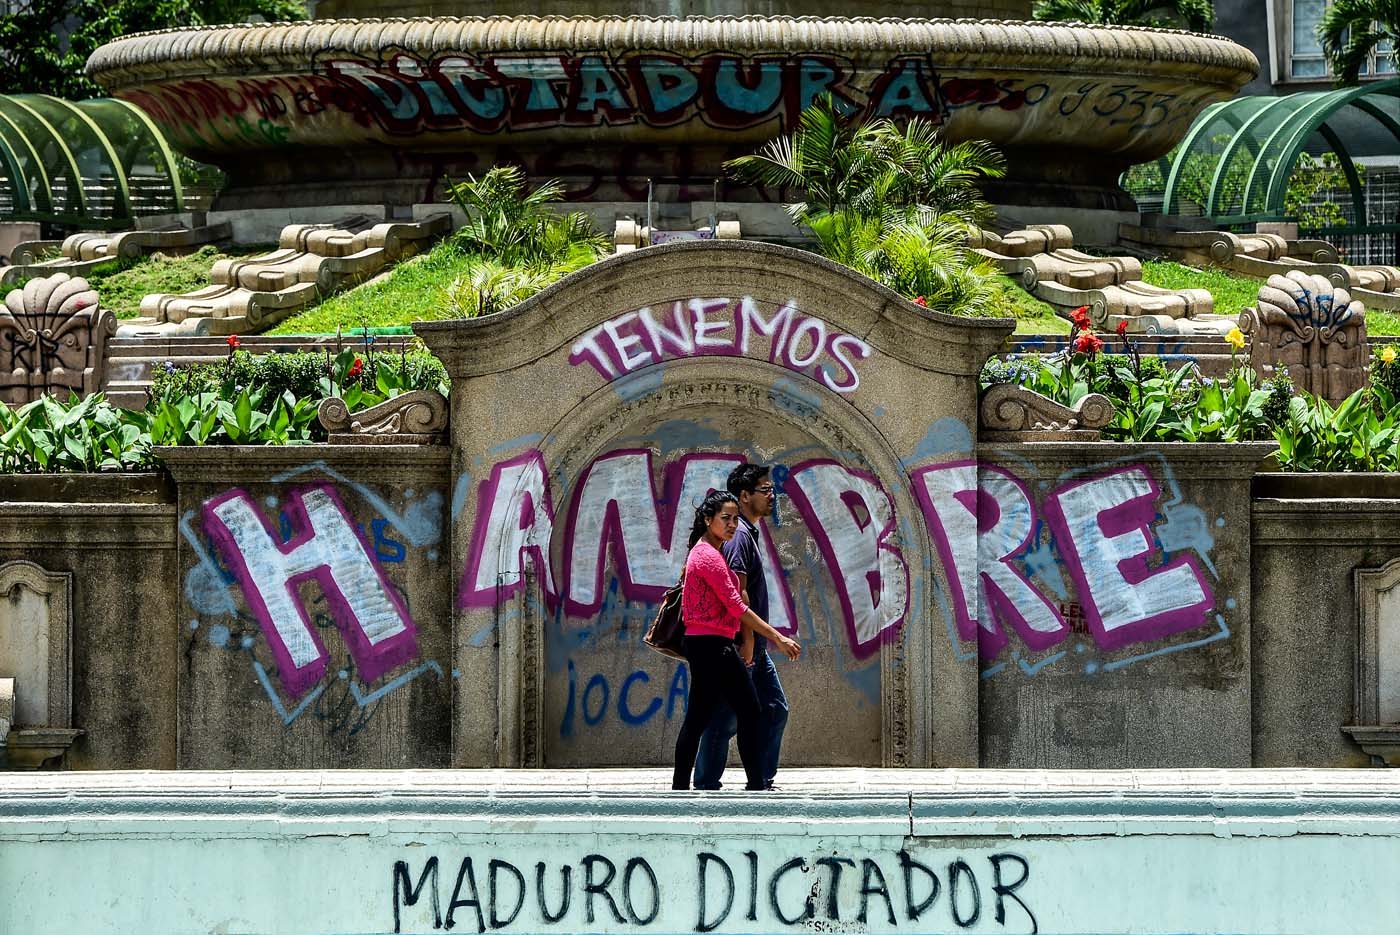 """A couple walks by graffitis reading """"We Are Hungry"""" and """"Maduro Dictator"""" in Caracas on August 8, 2017. Recent demonstrations in Venezuela have stemmed from anger over the installation of an all-powerful Constituent Assembly that many see as a power grab by the unpopular President Nicolas Maduro. The dire economic situation also has stirred deep bitterness as people struggle with skyrocketing inflation and shortages of food and medicine.  / AFP PHOTO / Ronaldo SCHEMIDT"""